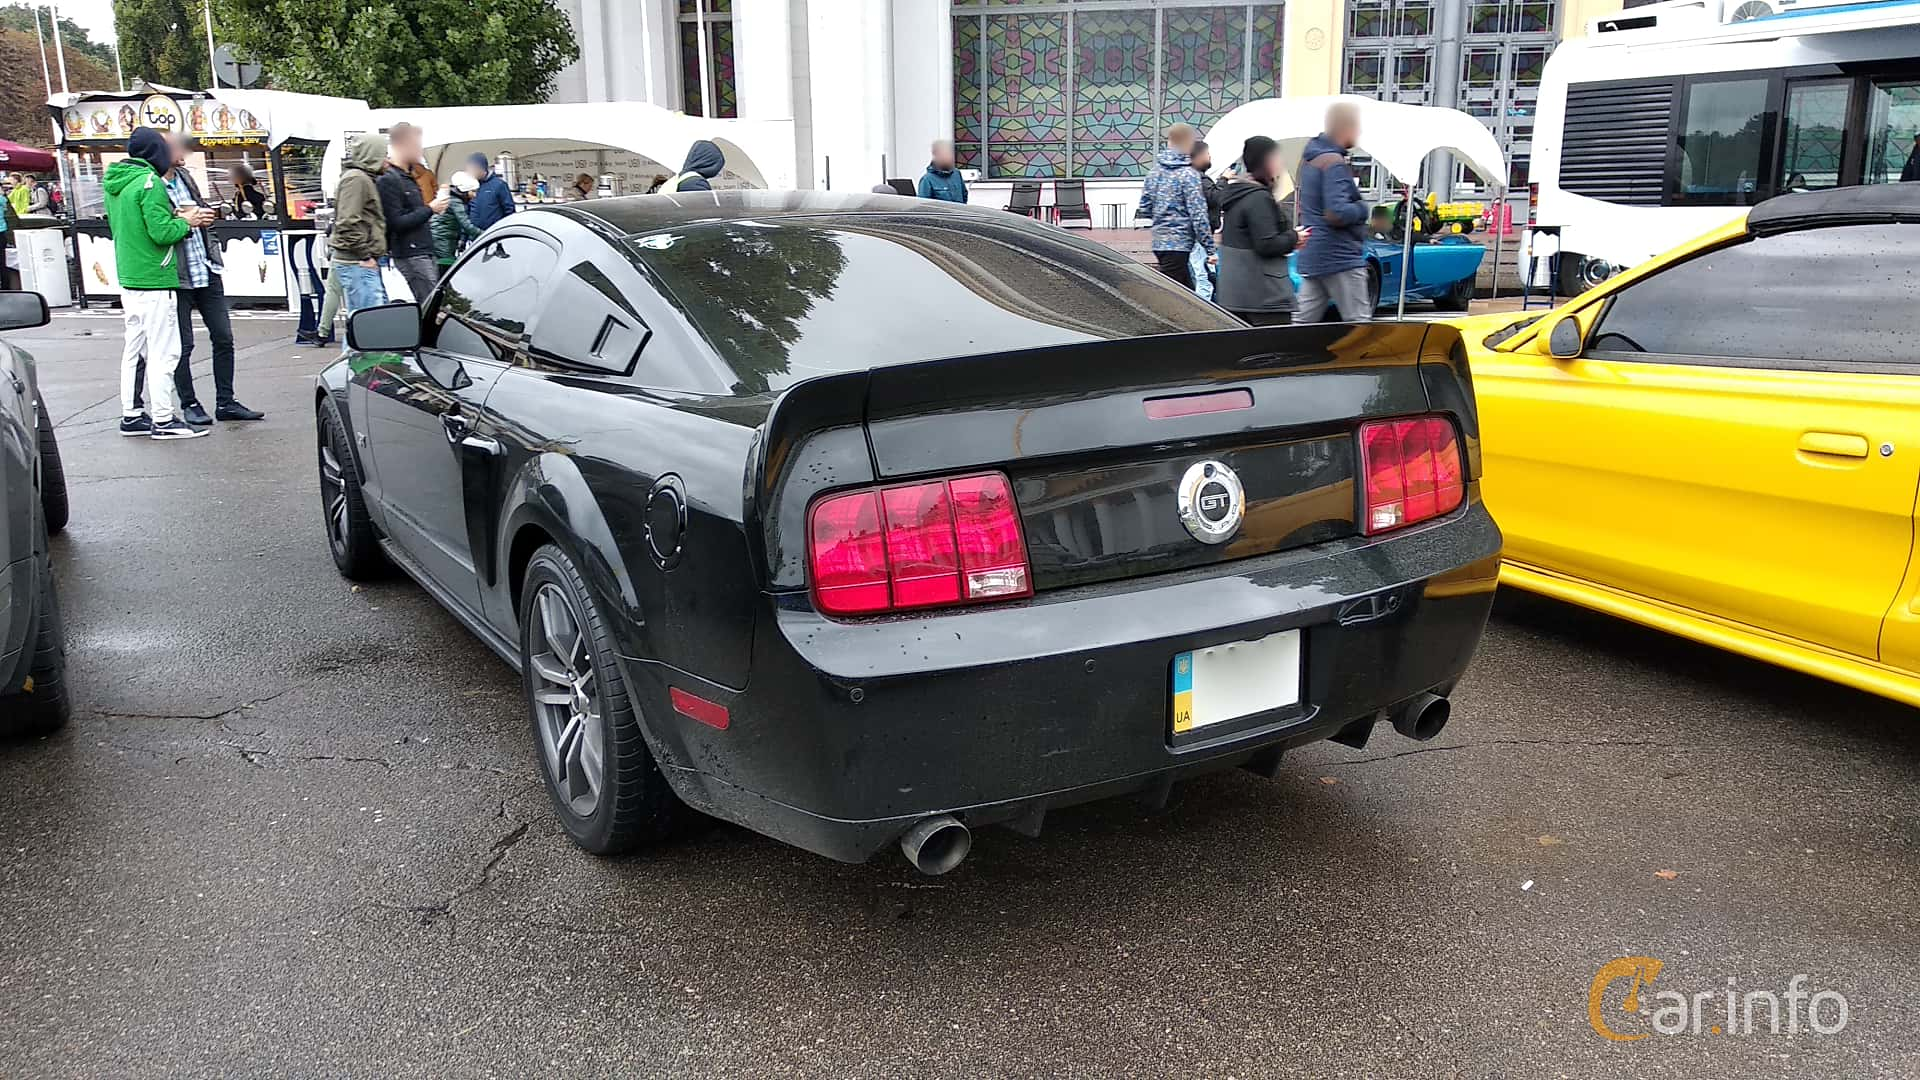 Ford Mustang GT 4.6 V8 304hp, 2005 at Old Car Land no.2 2018